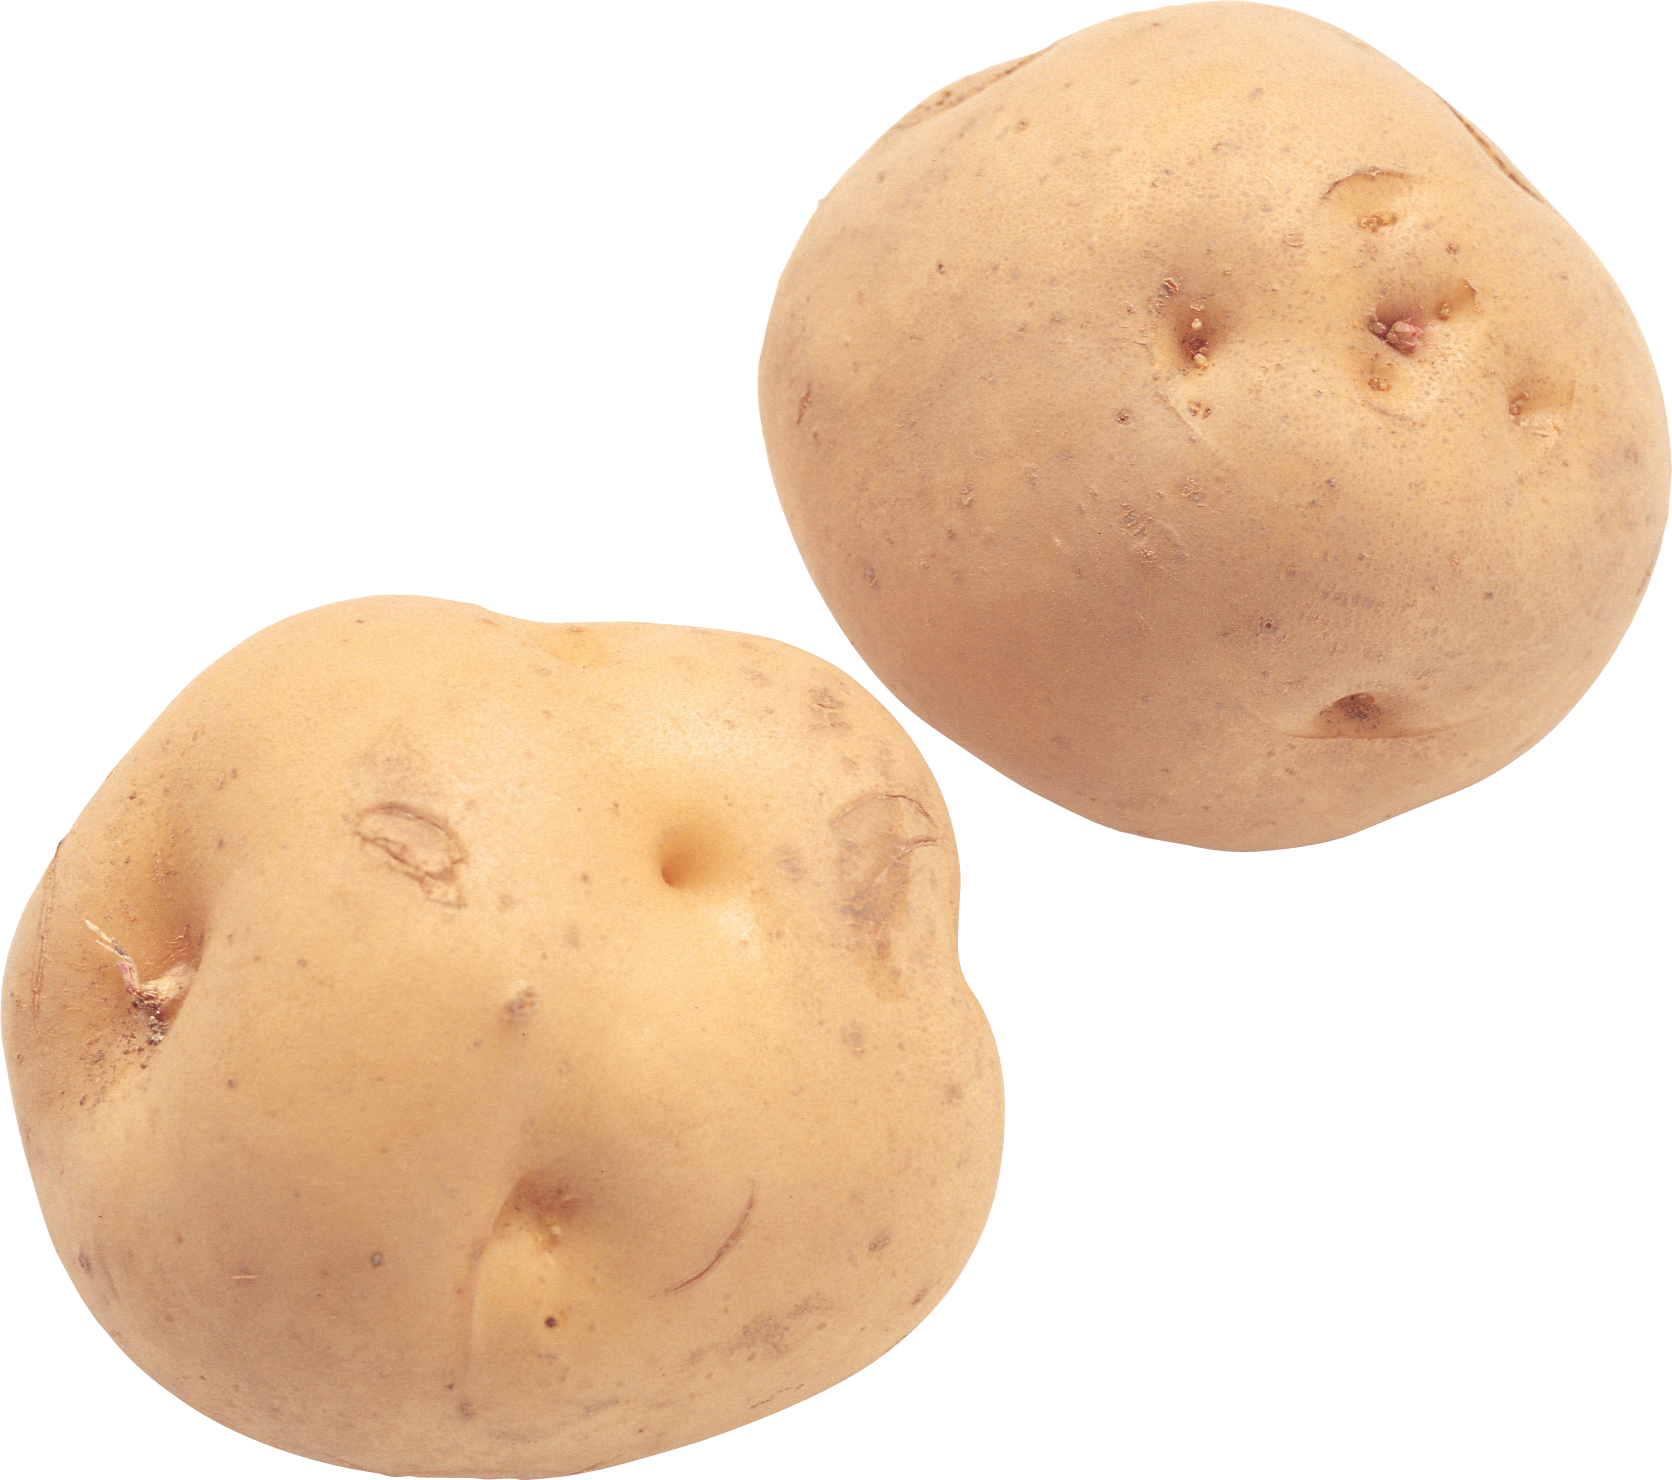 Potato PNG File - Potato HD PNG